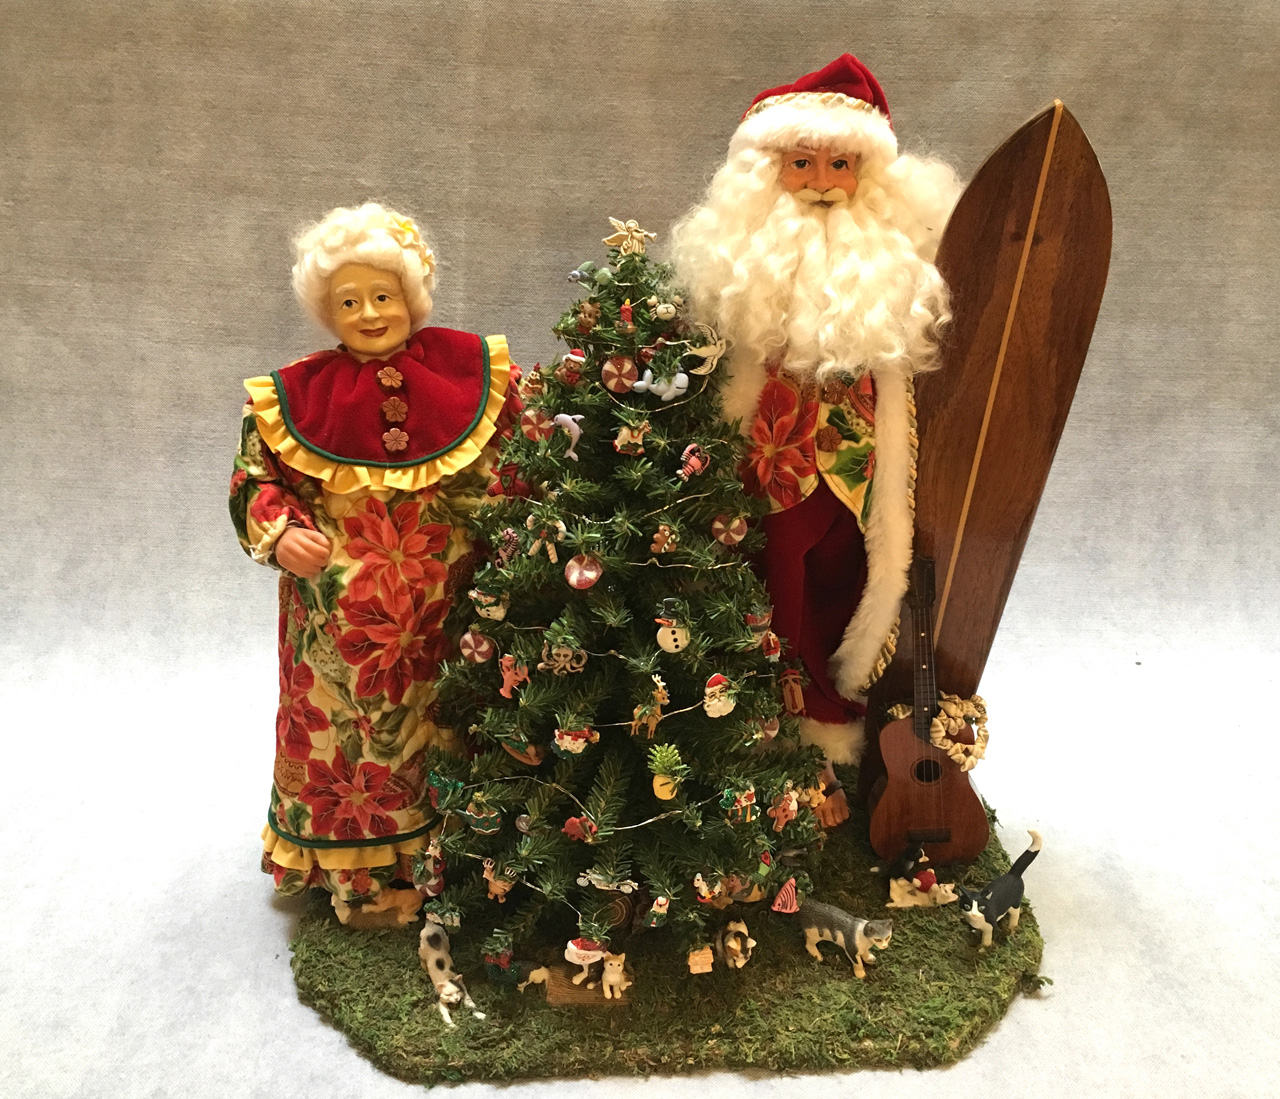 Mr. and Mrs. Santa Claus standing by Christmas tree